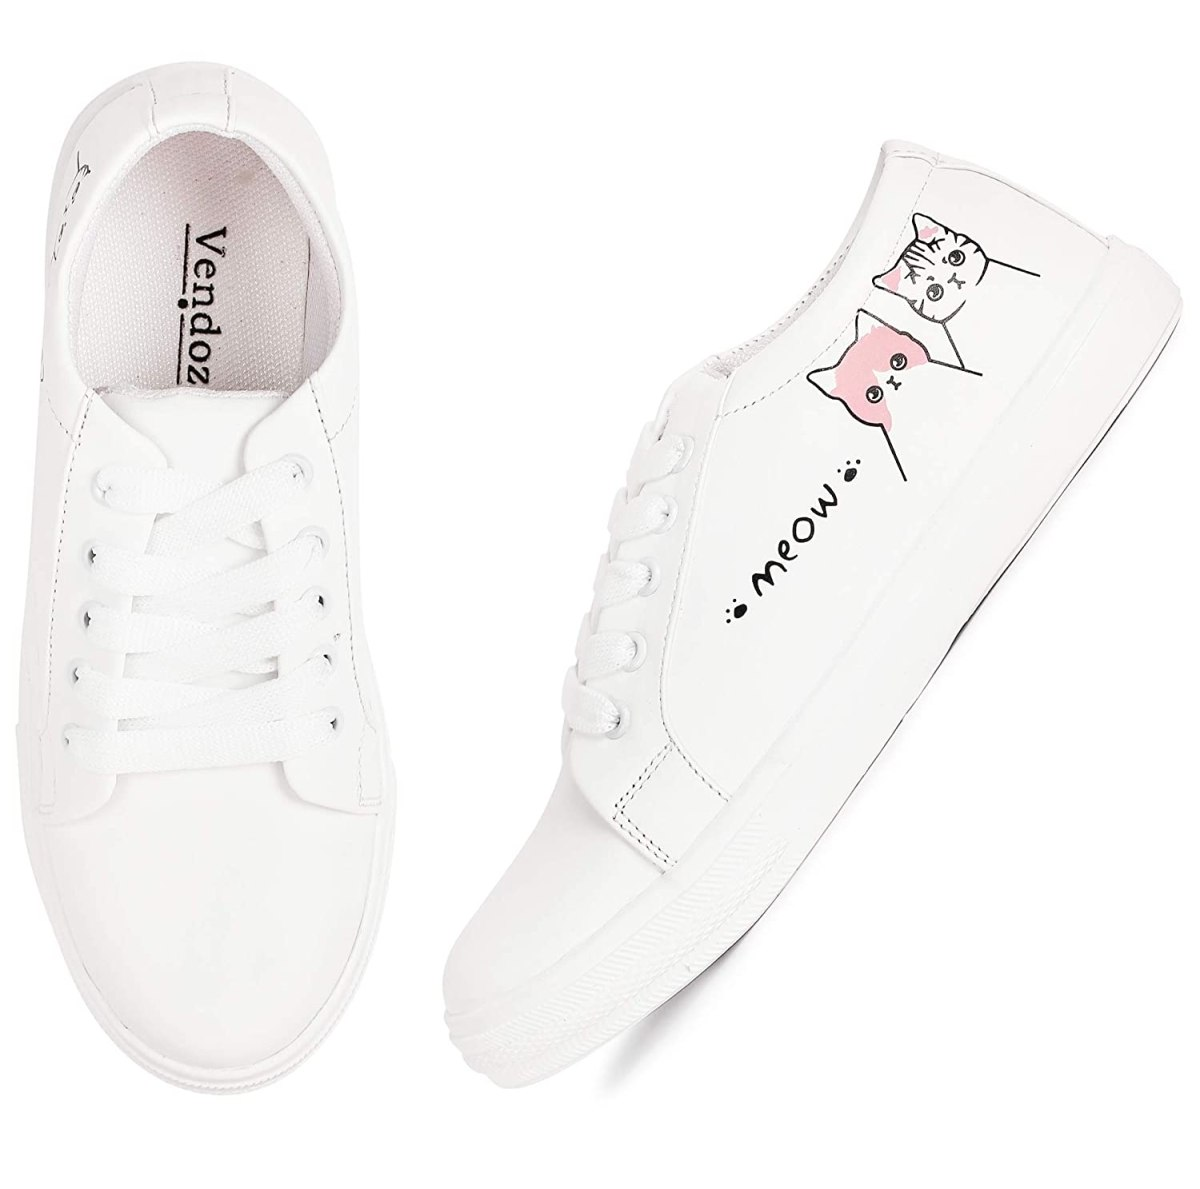 VENDOZ Women and Girls Latest Collection White Casual Shoes Sneakers